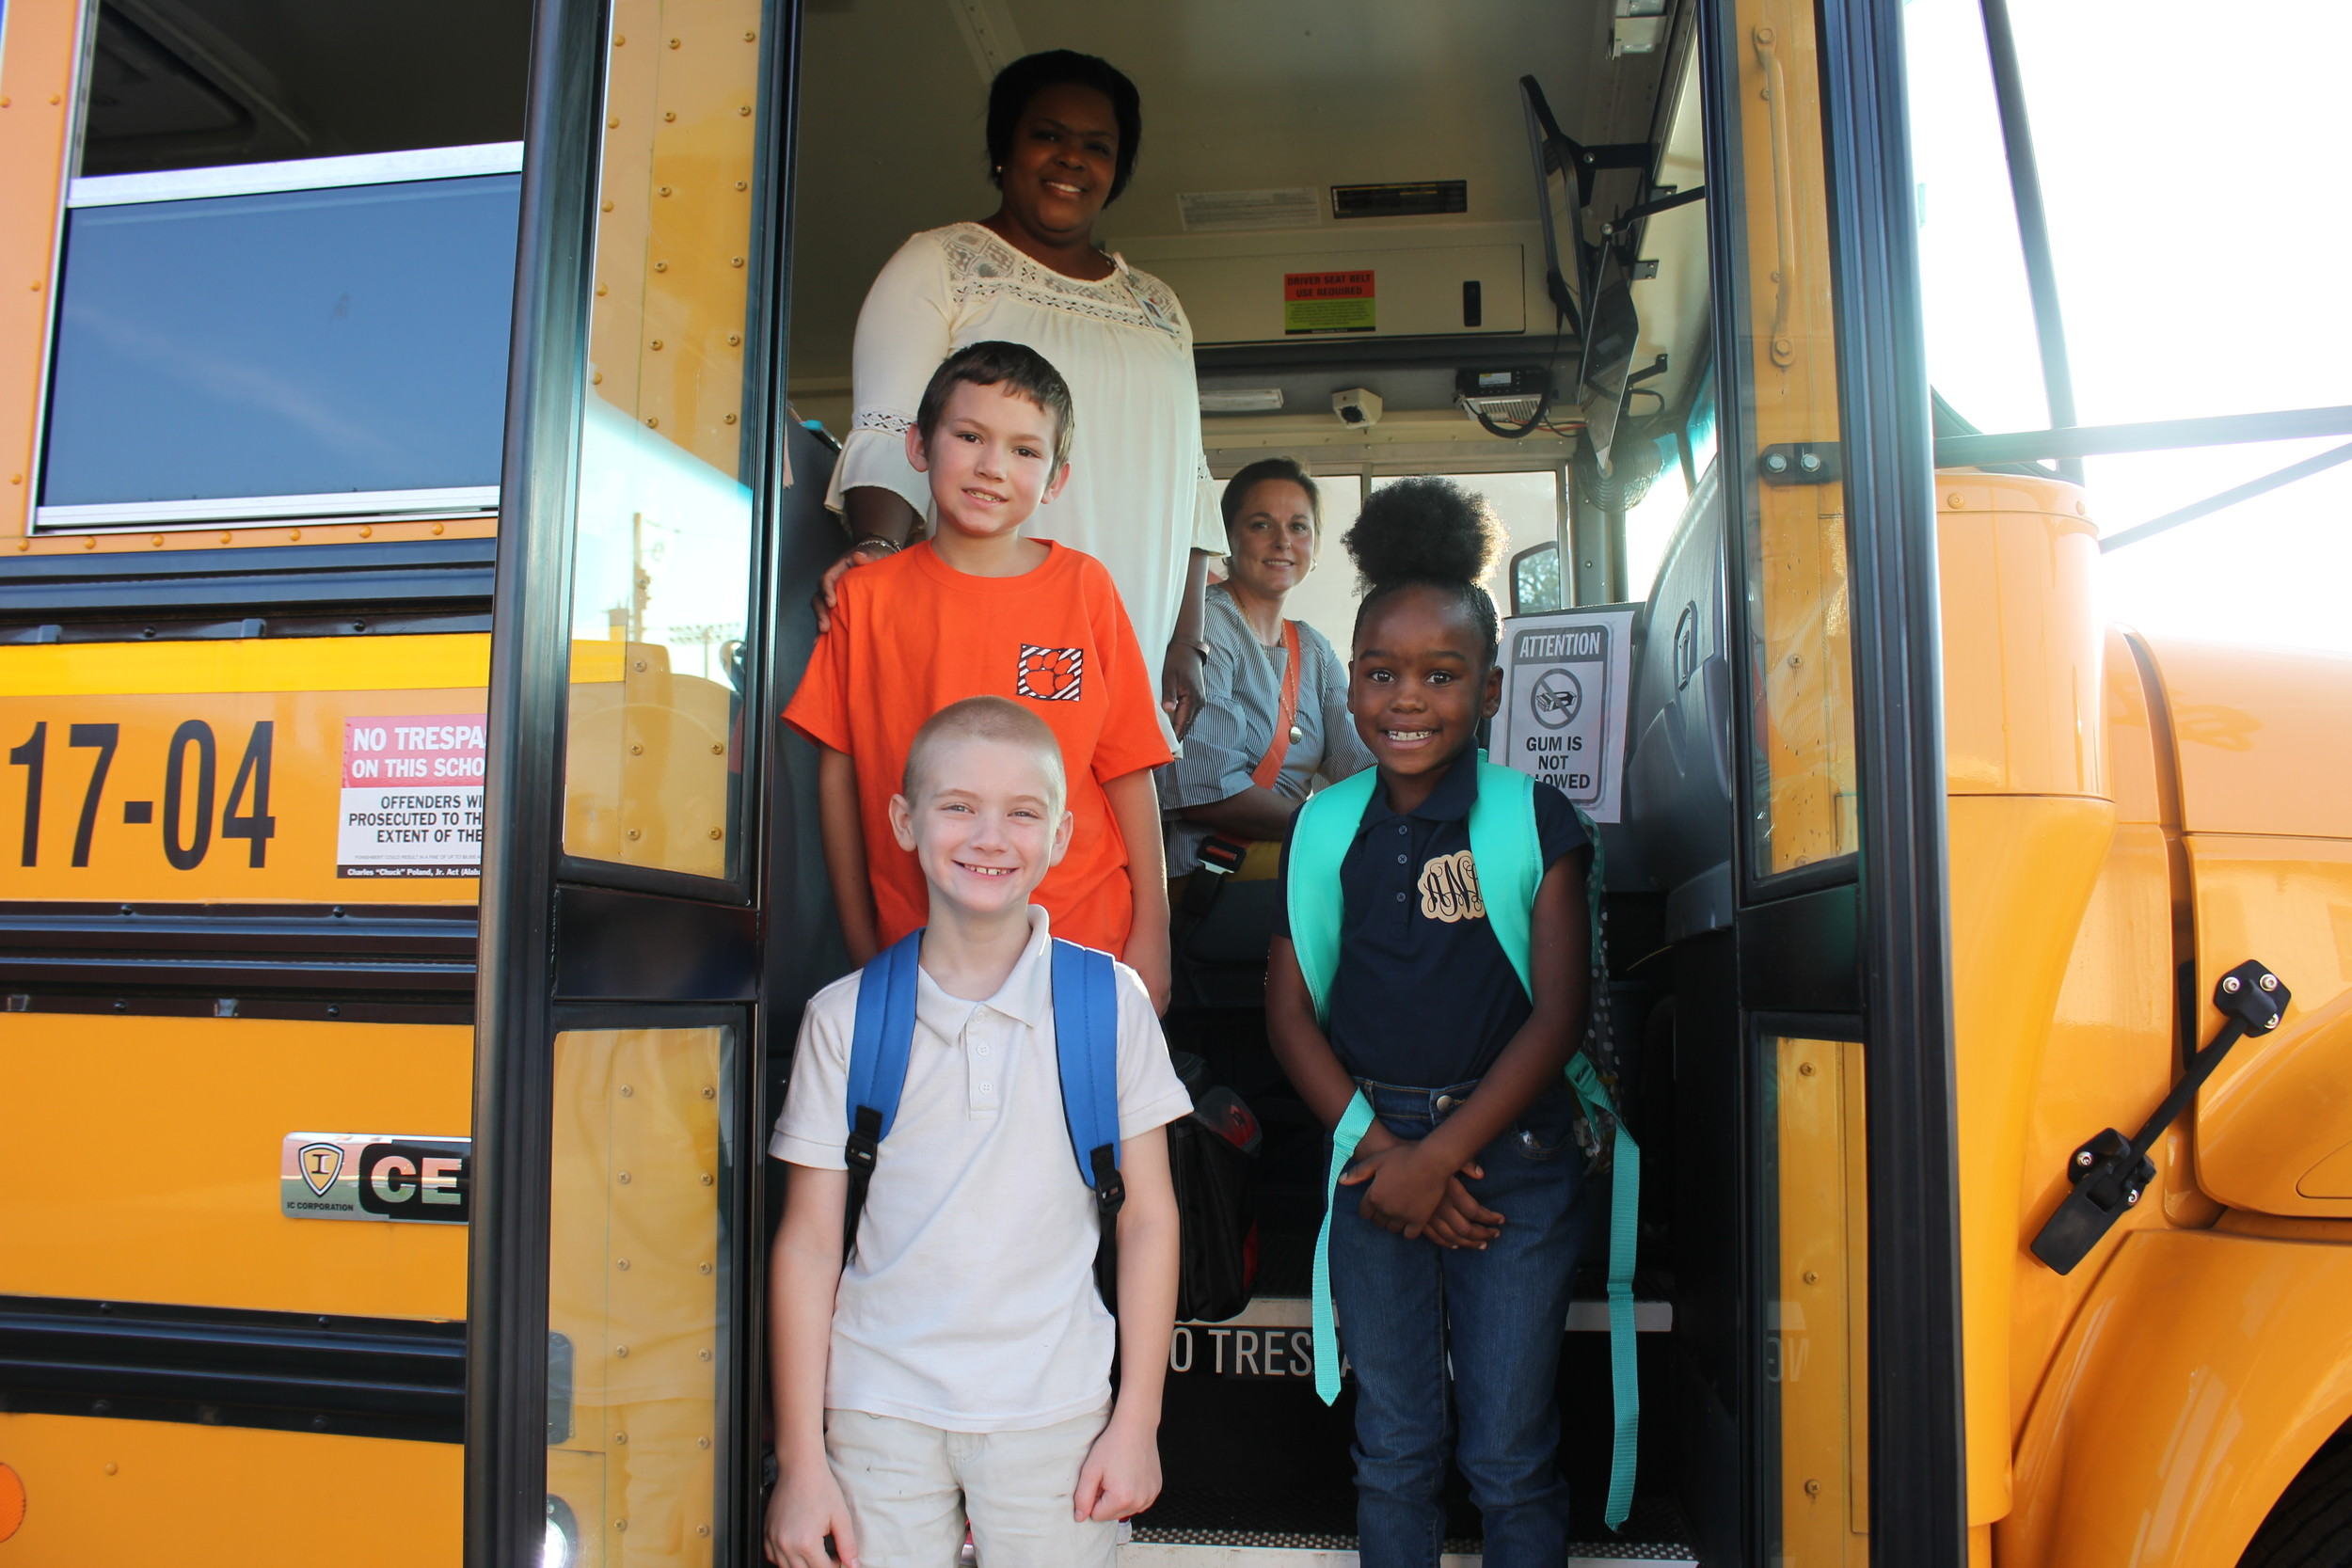 Assistant Principal Katina Smith-Davis welcomes students Nathan Walley, Nicholas Bledsoe, and Andriana Nelson arriving on Adrienne Boeschen's bus.